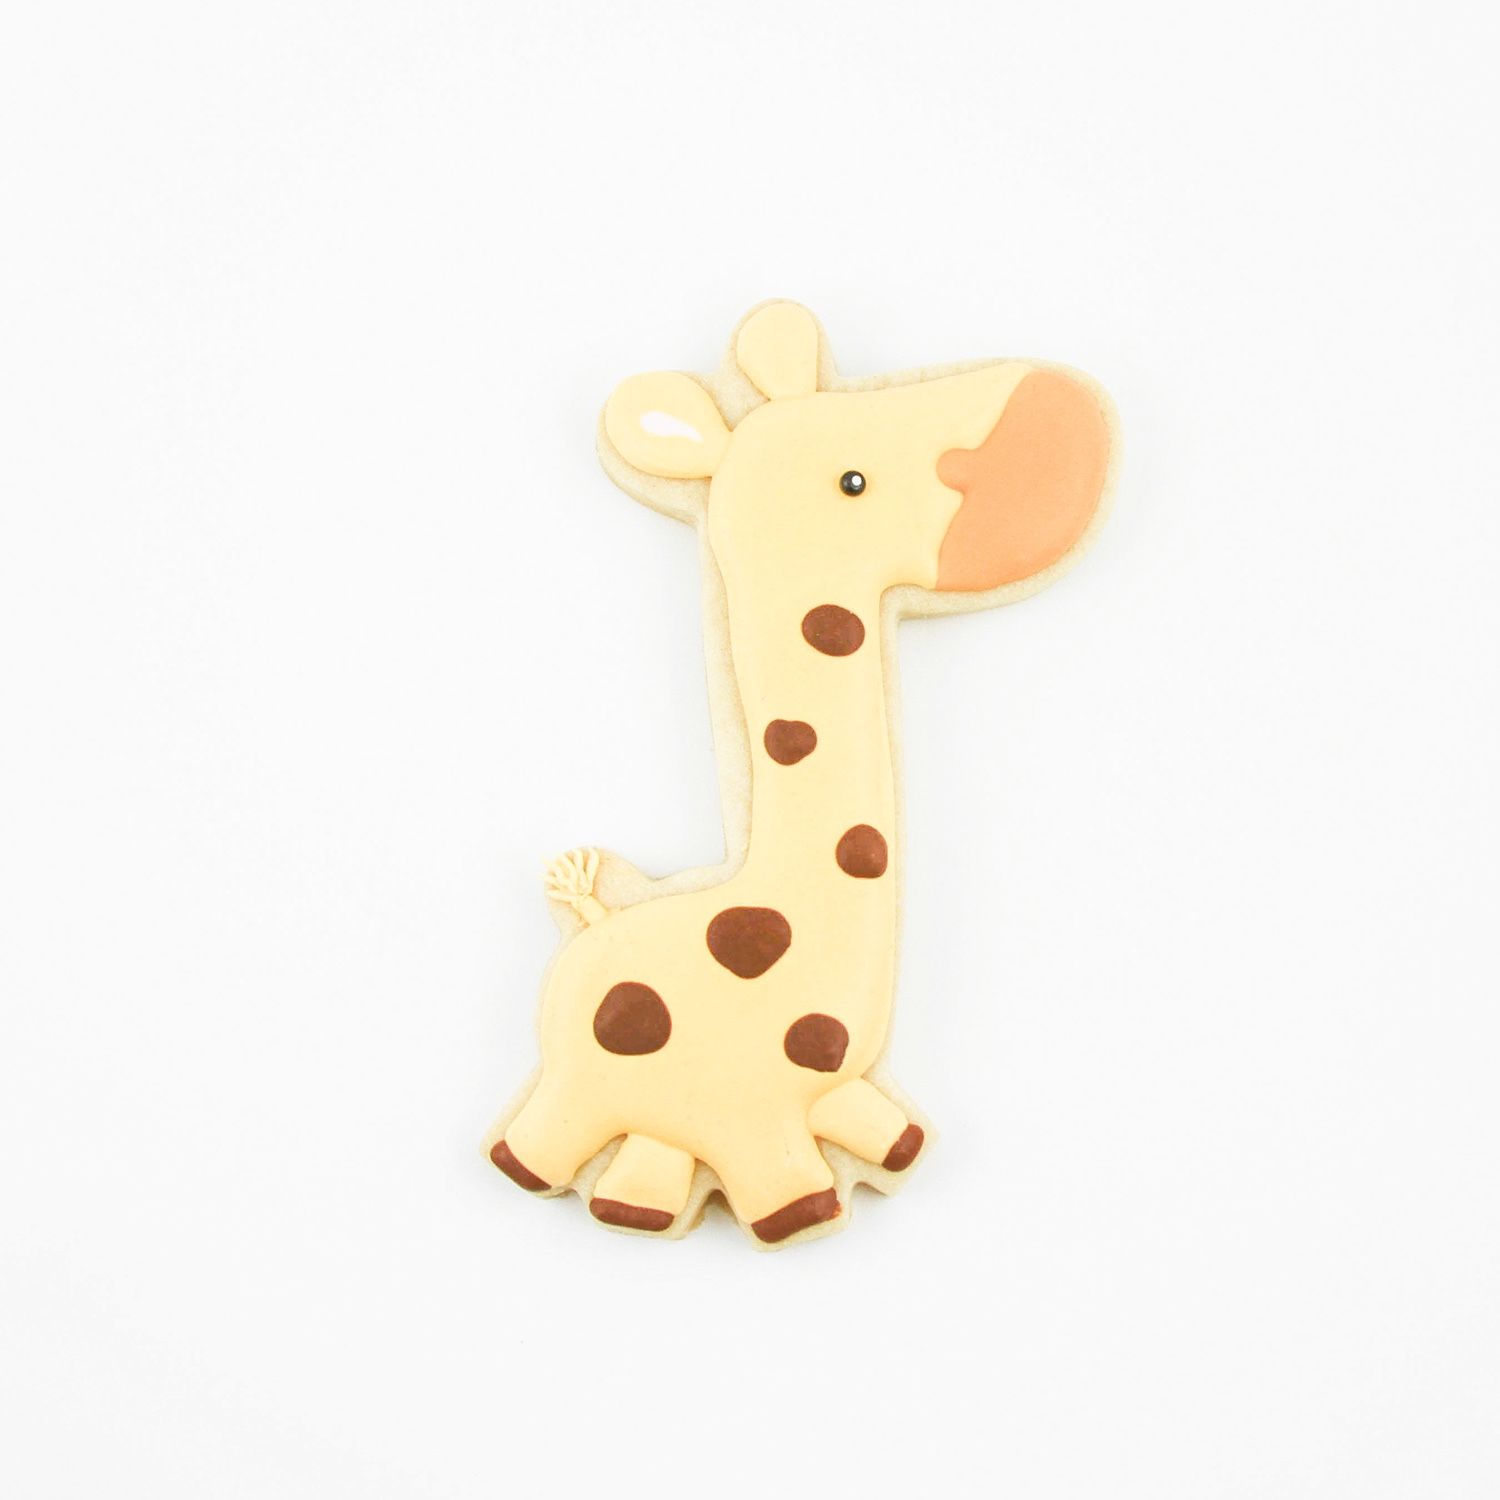 Giraffe Royal Icing Cookie